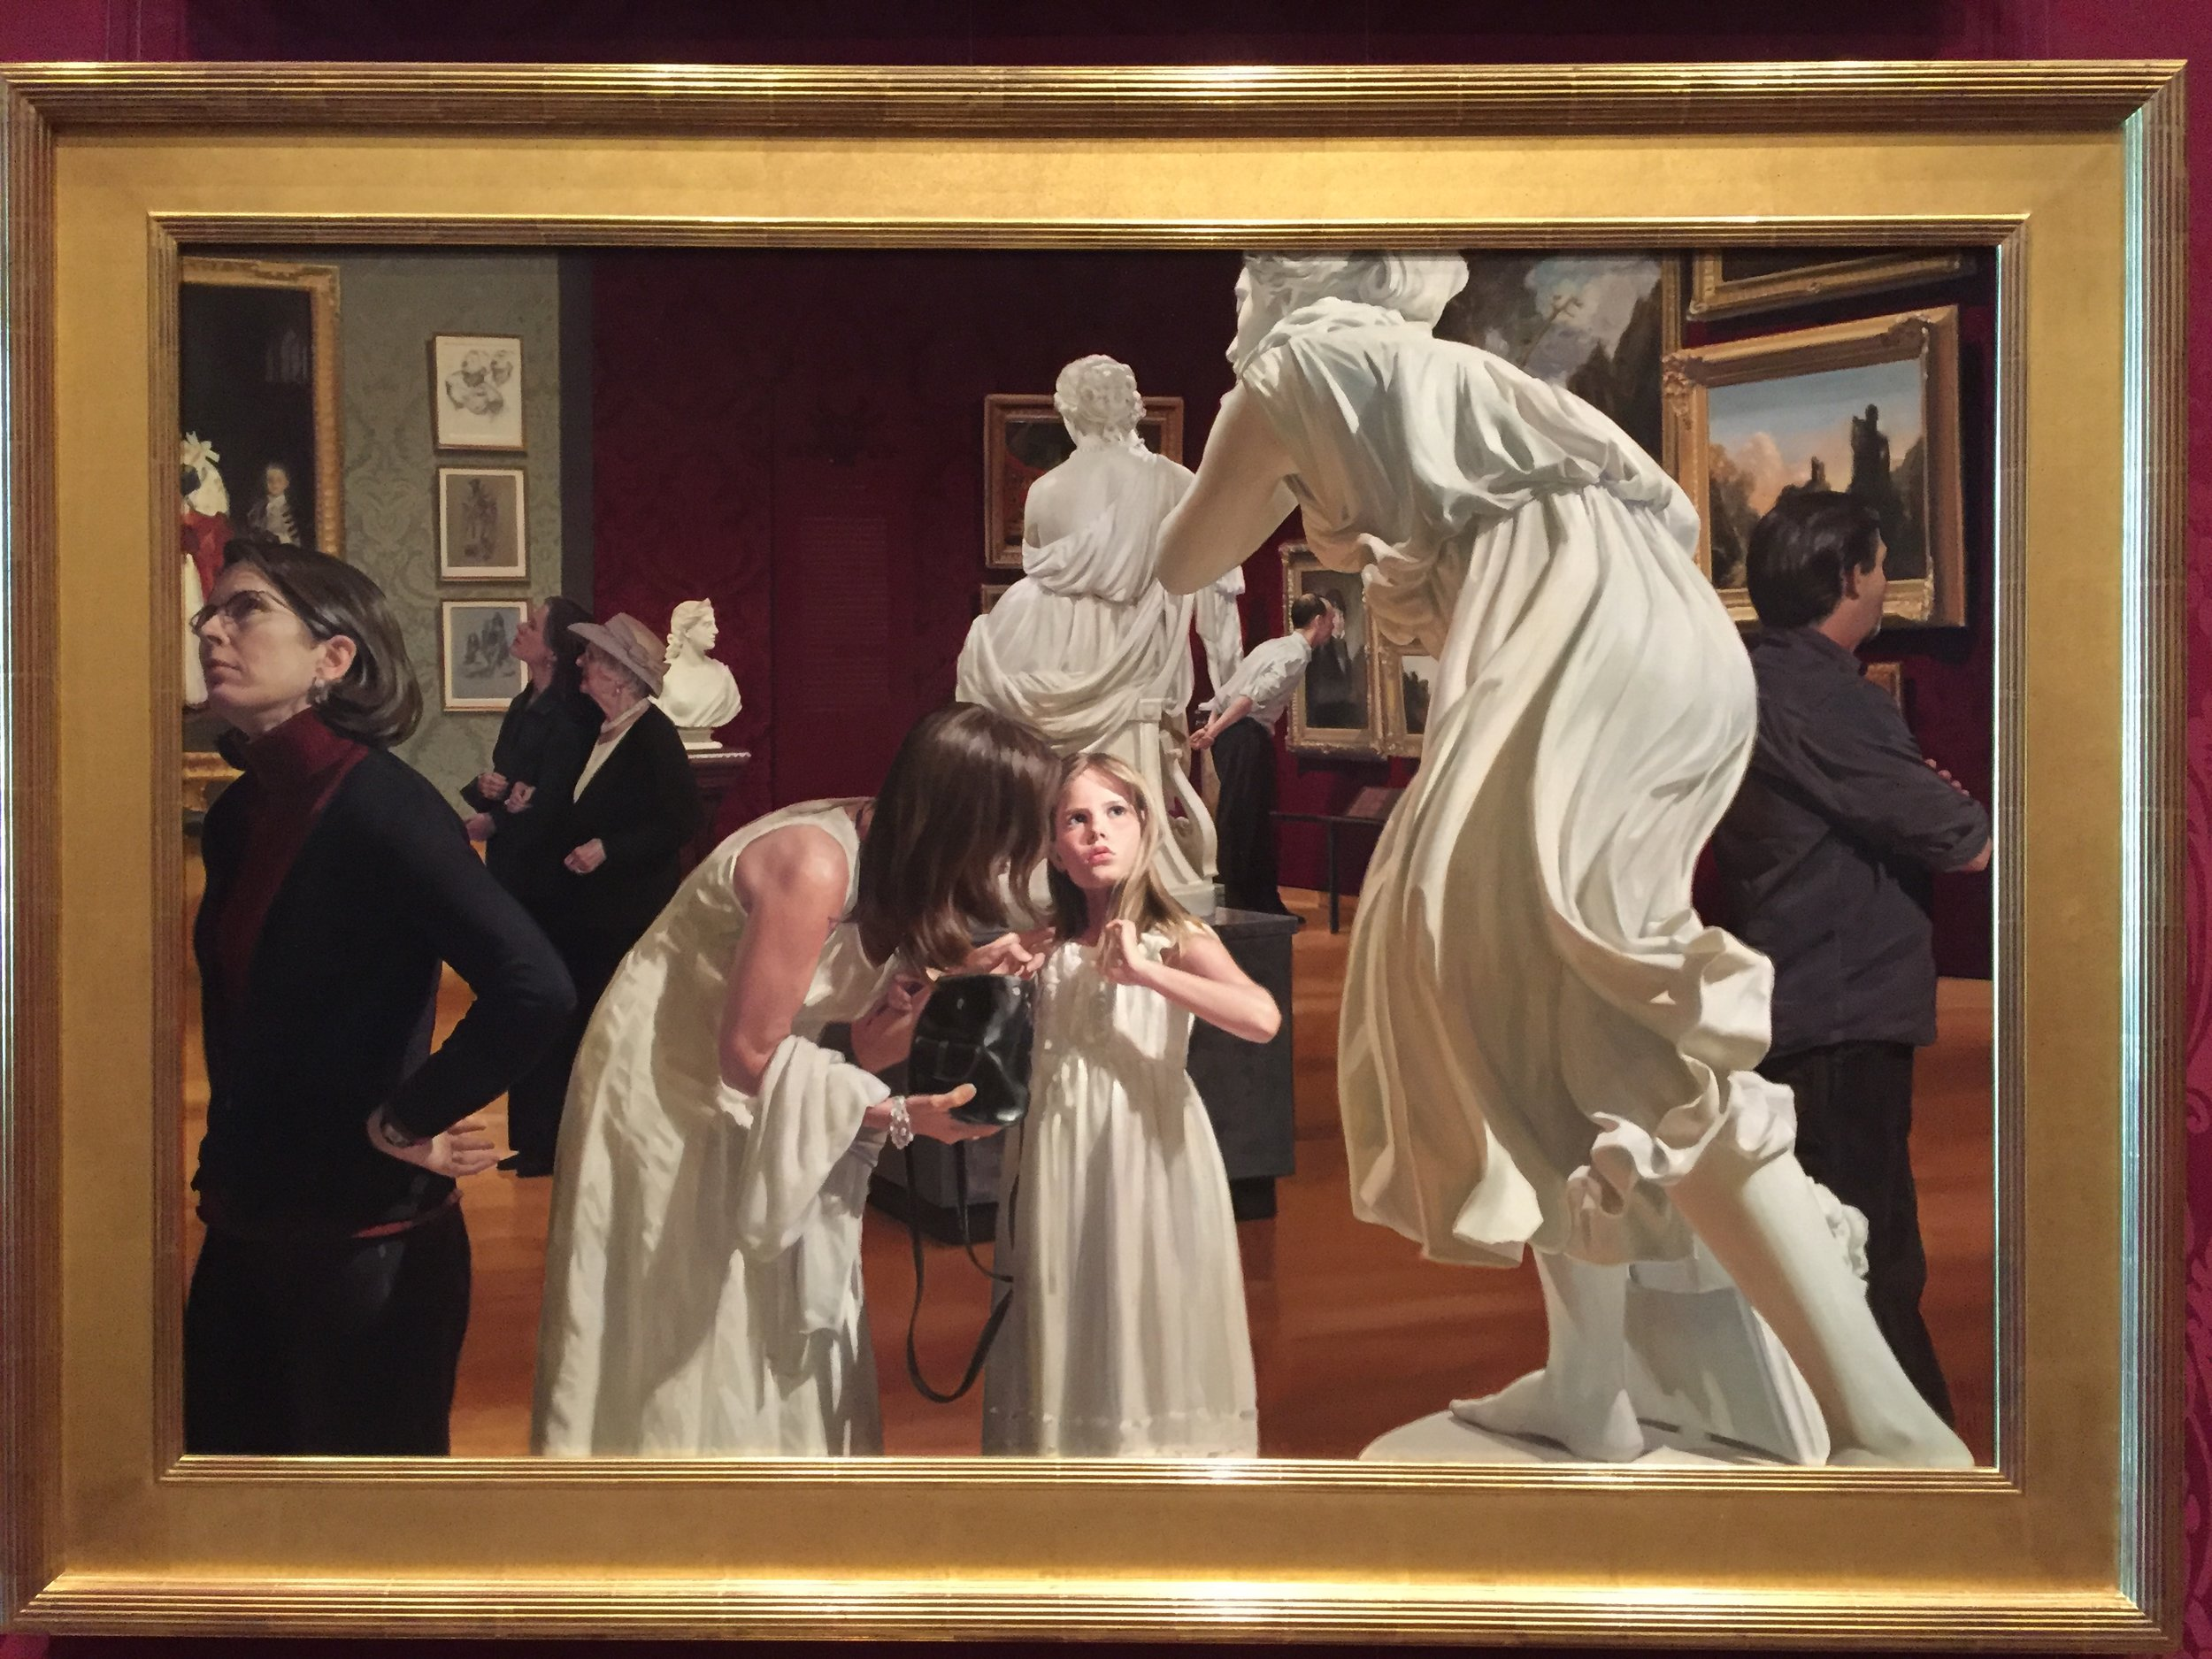 'Museum Epiphany III' by Warren and Lucia Prosperi, at Boston's Museum of Fine Arts